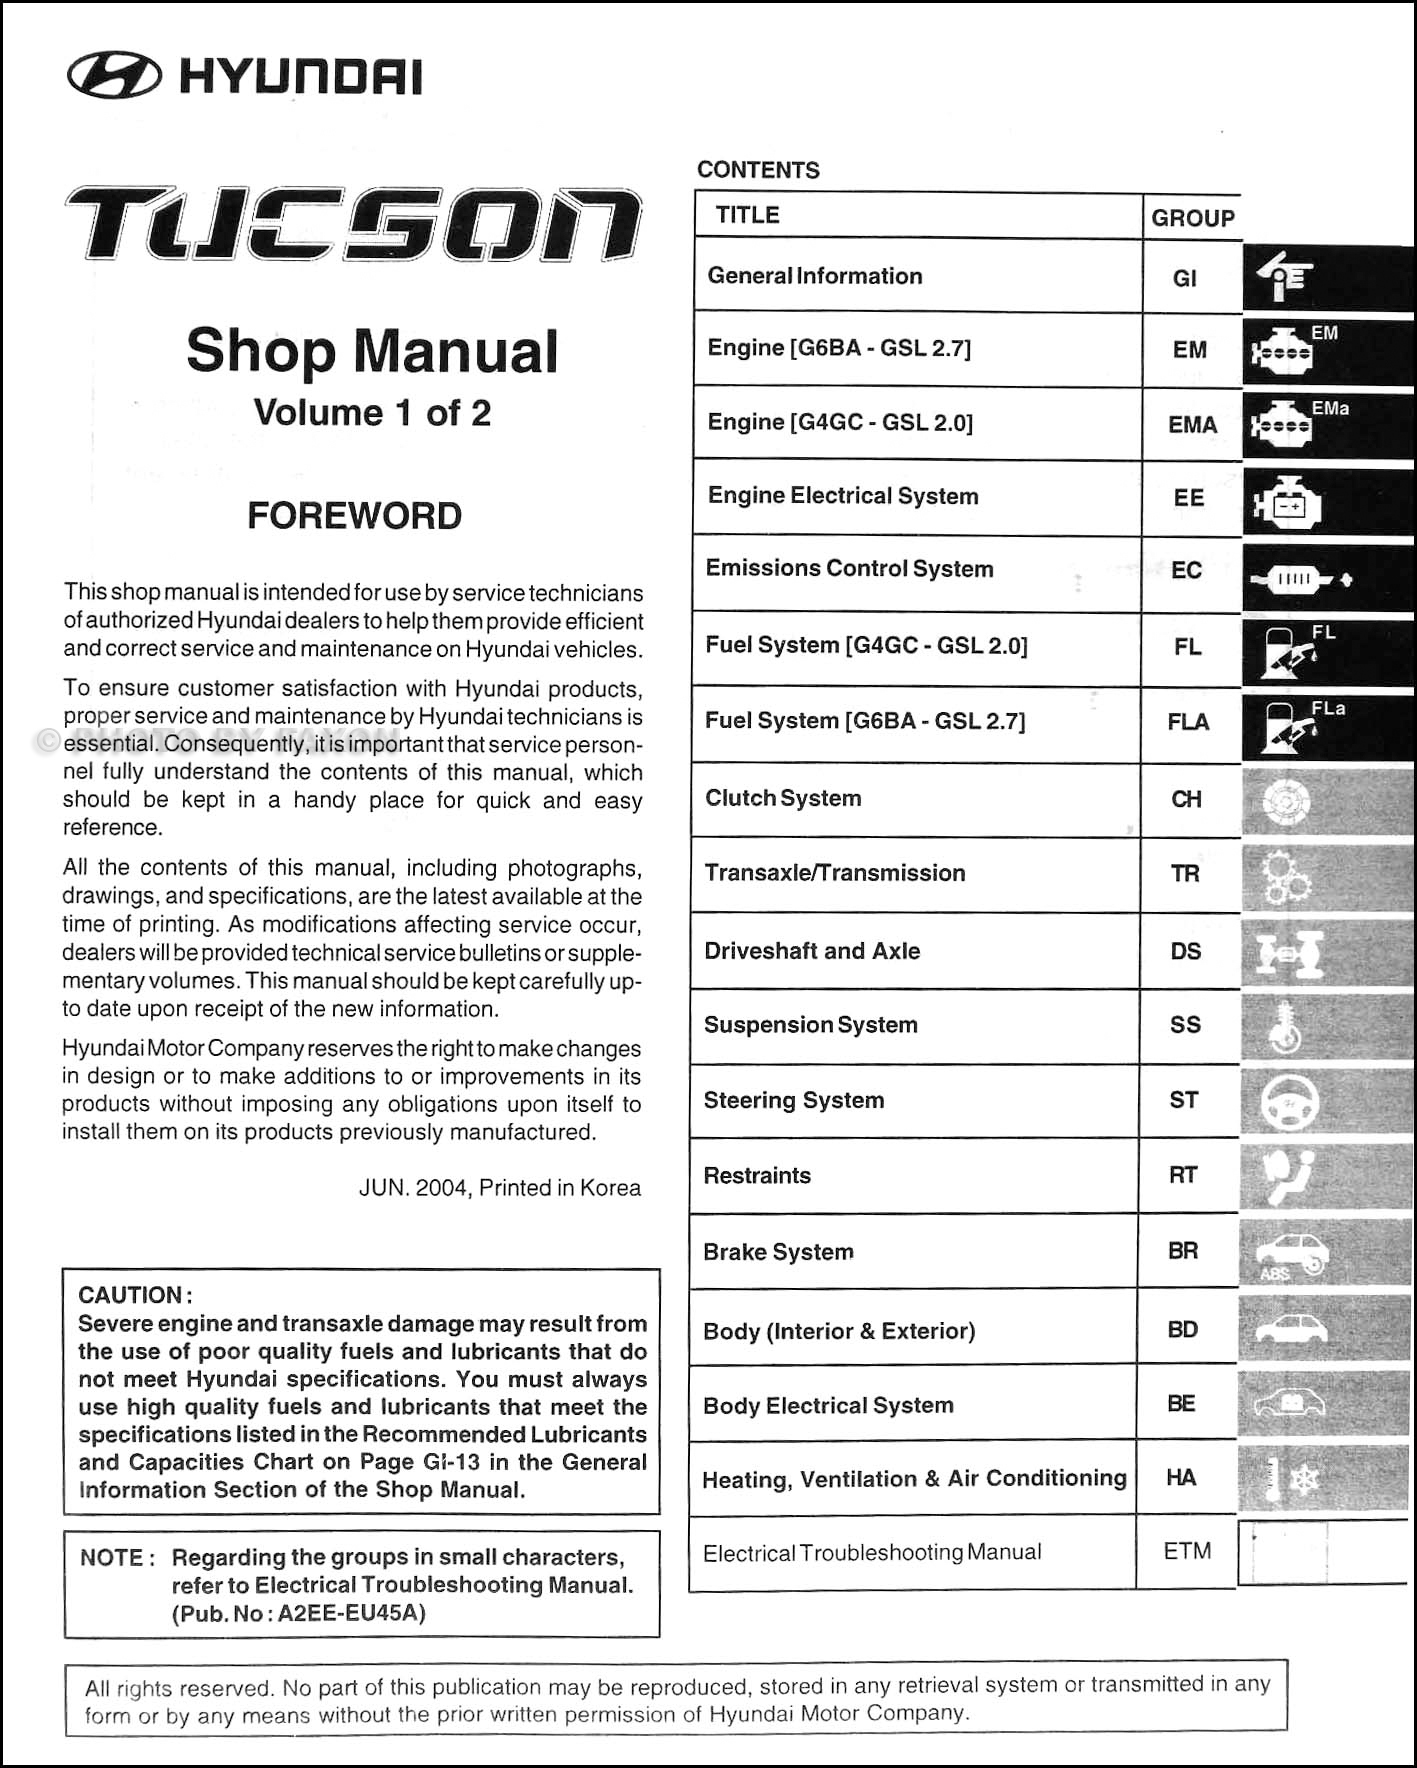 2005 Hyundai Tucson Repair Manual 2 Volume Set Original · Table of Contents